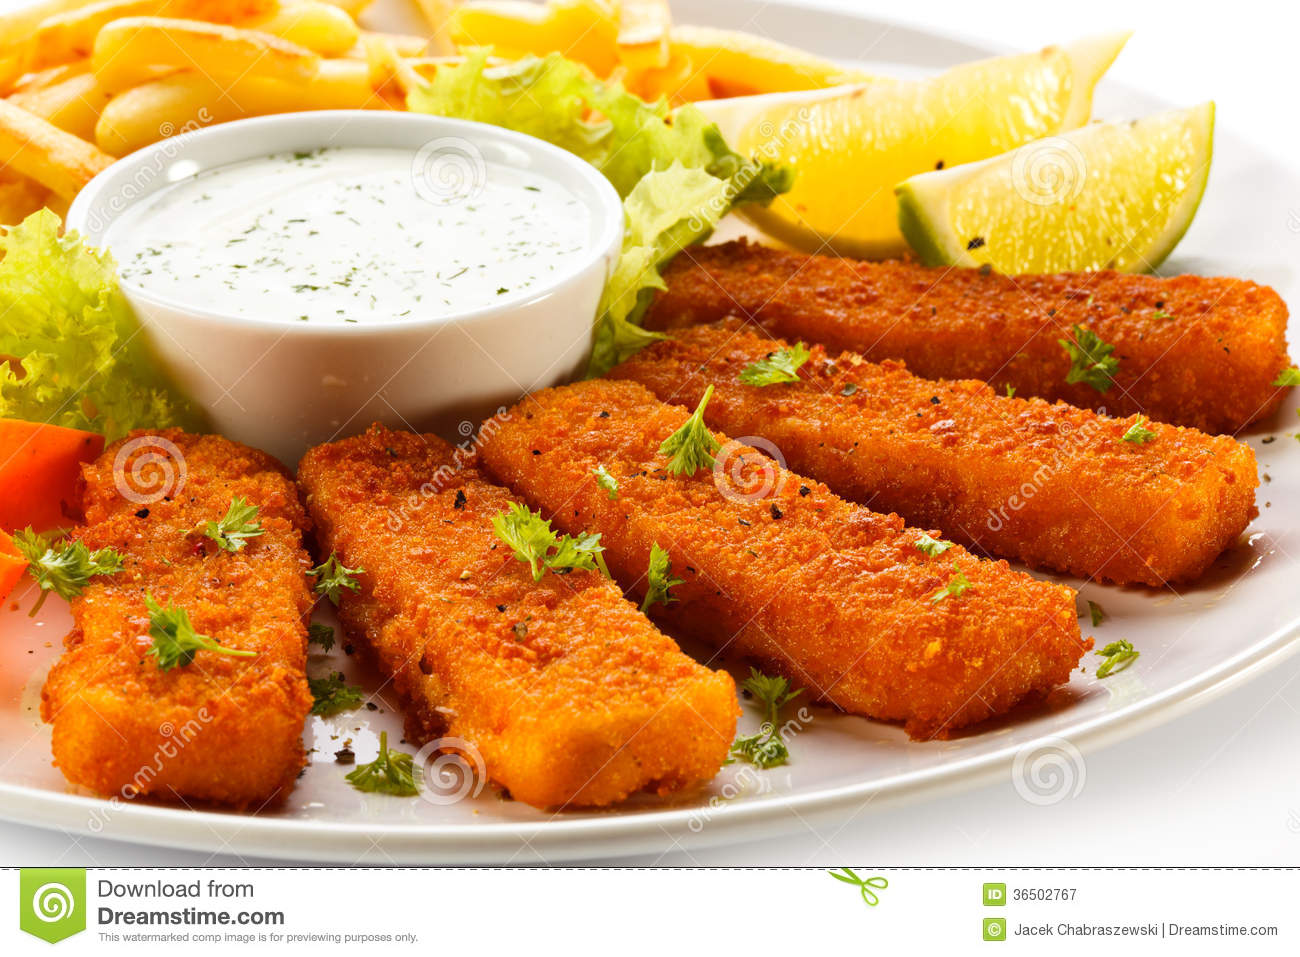 Fried fish fingers royalty free stock photography image for What to eat with fried fish